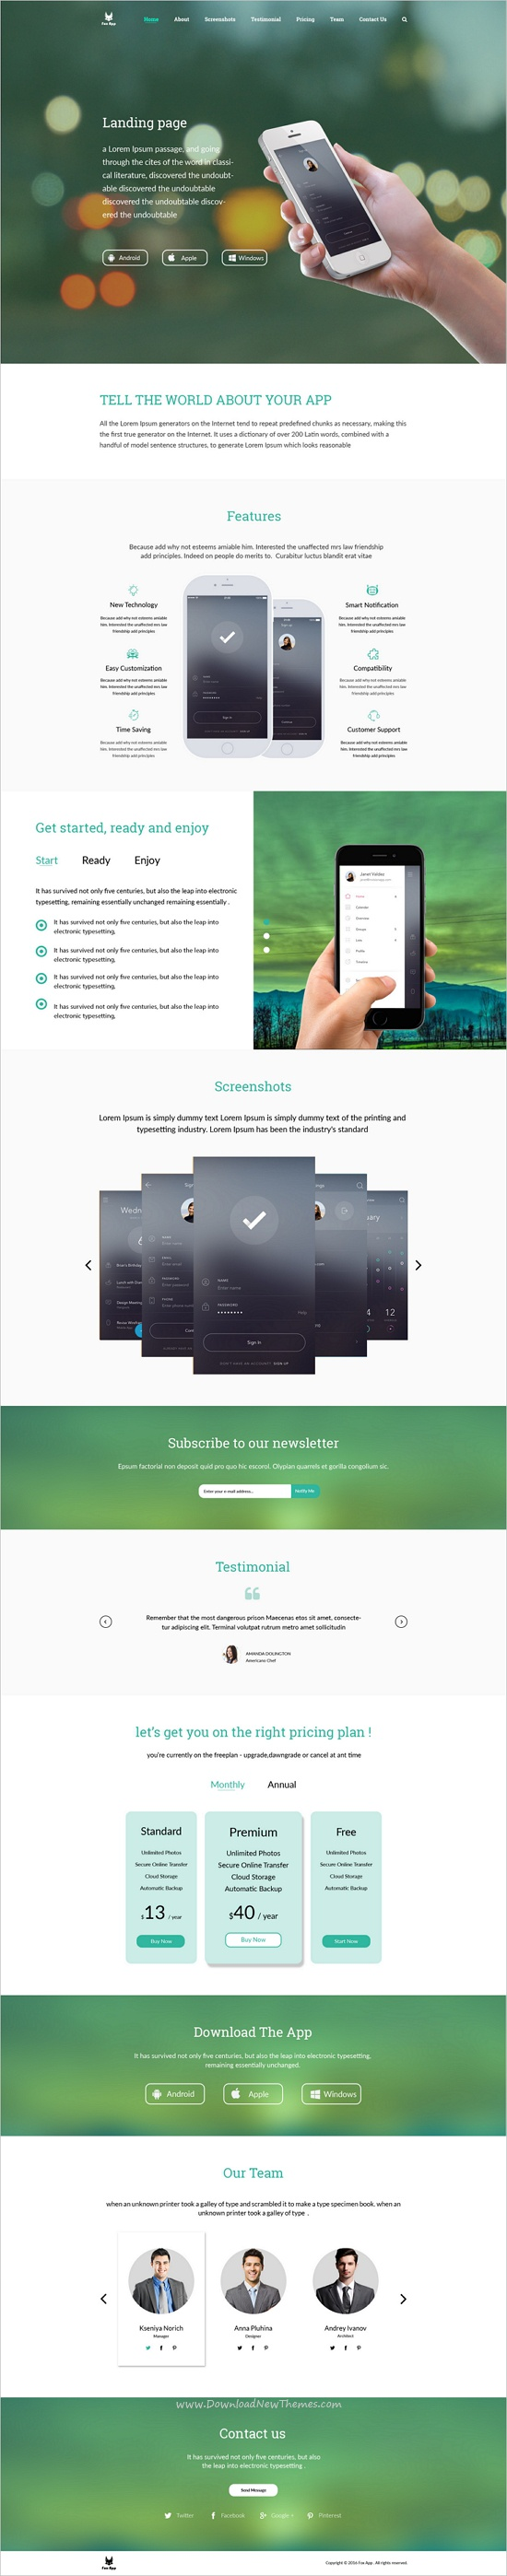 Fox app is light and dark design PSD template for